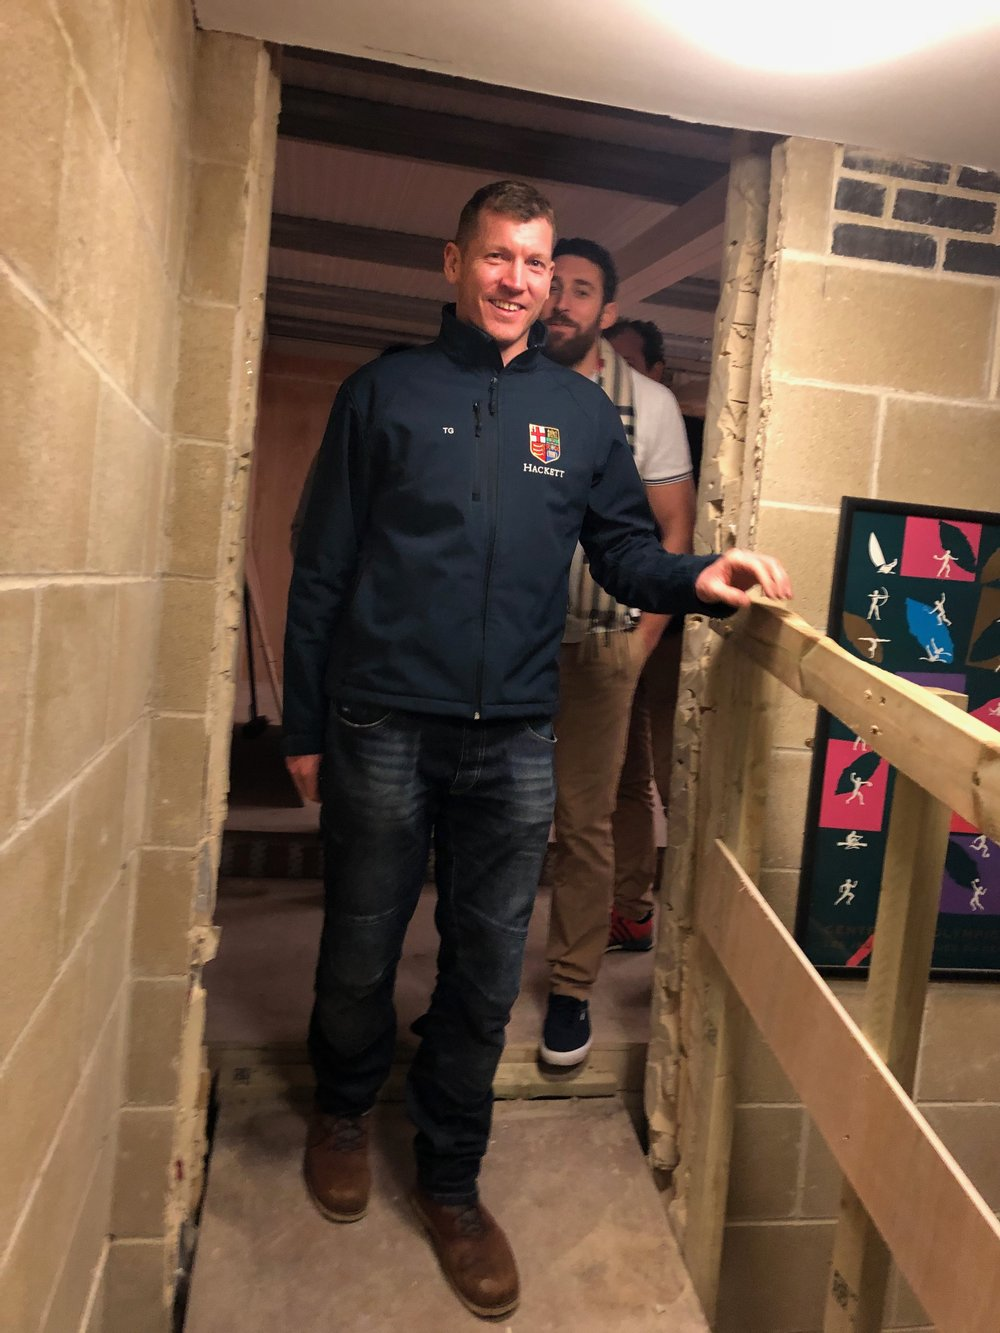 Our Honorary House Steward (Building) Josh McInerney (rear) urging the Captain, Tim Grant to test the temporary footbridge…